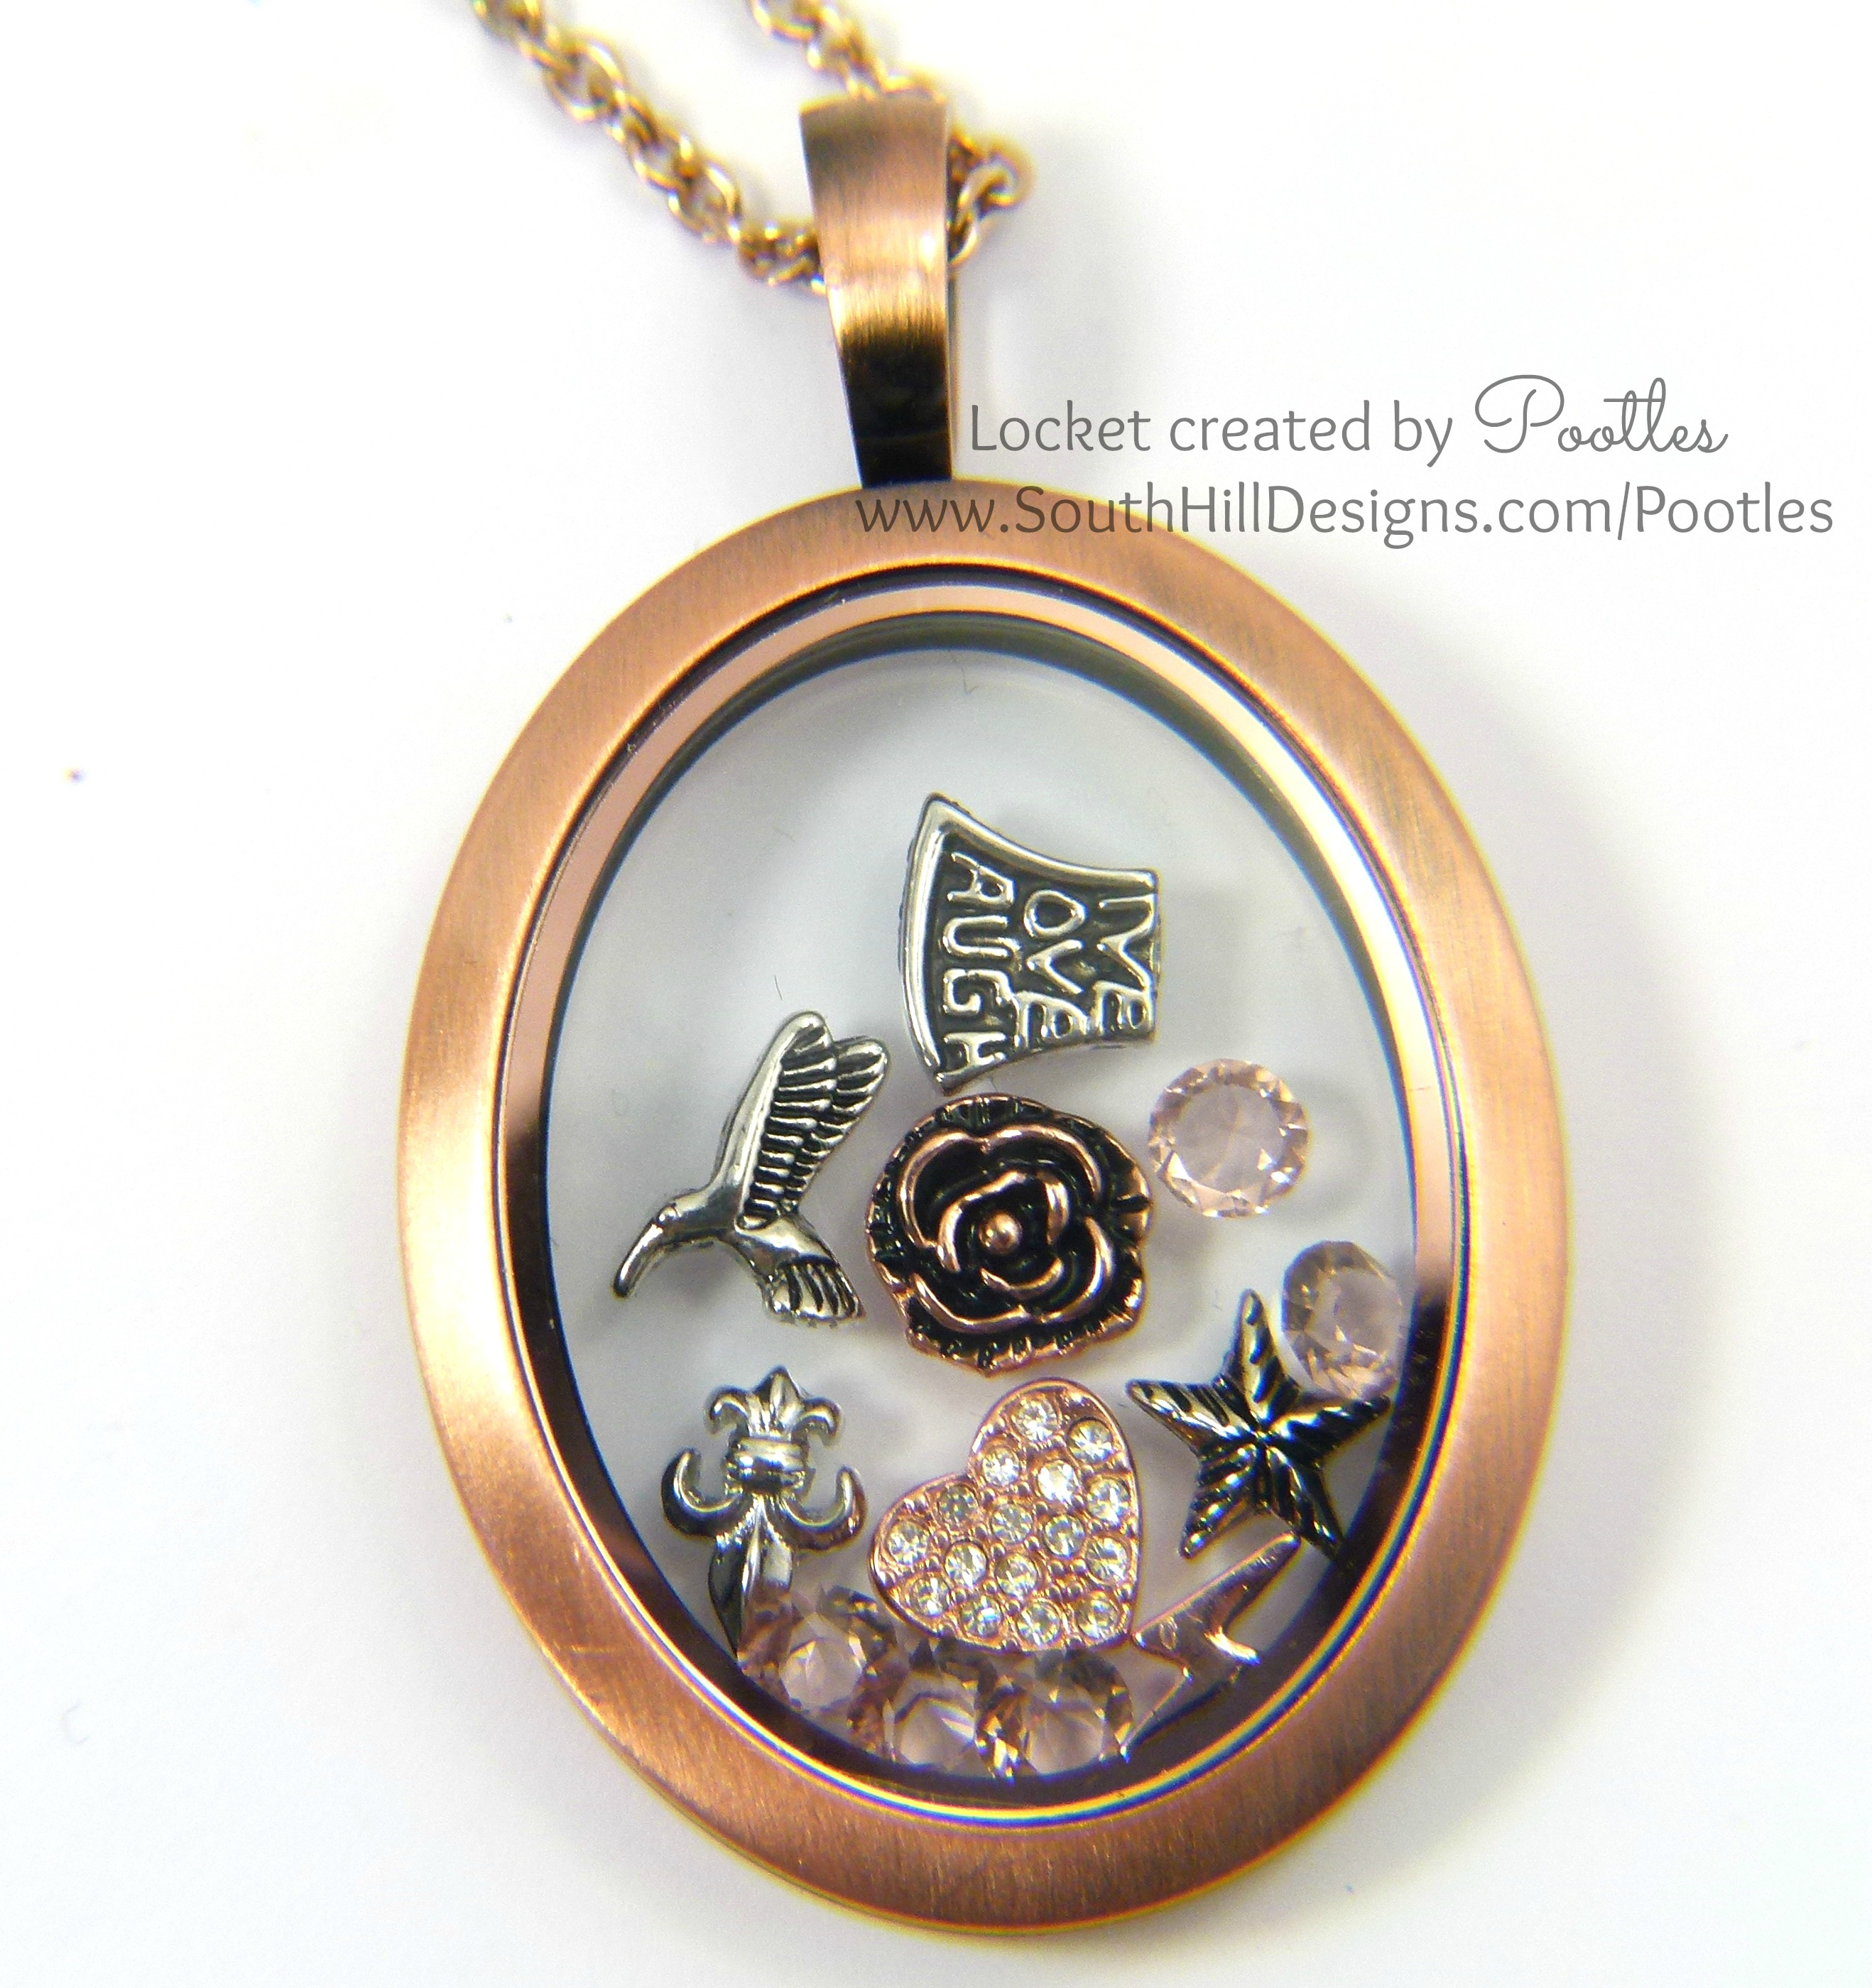 gogbpkrs images locket antique best on nouveau pinterest lockets art rose